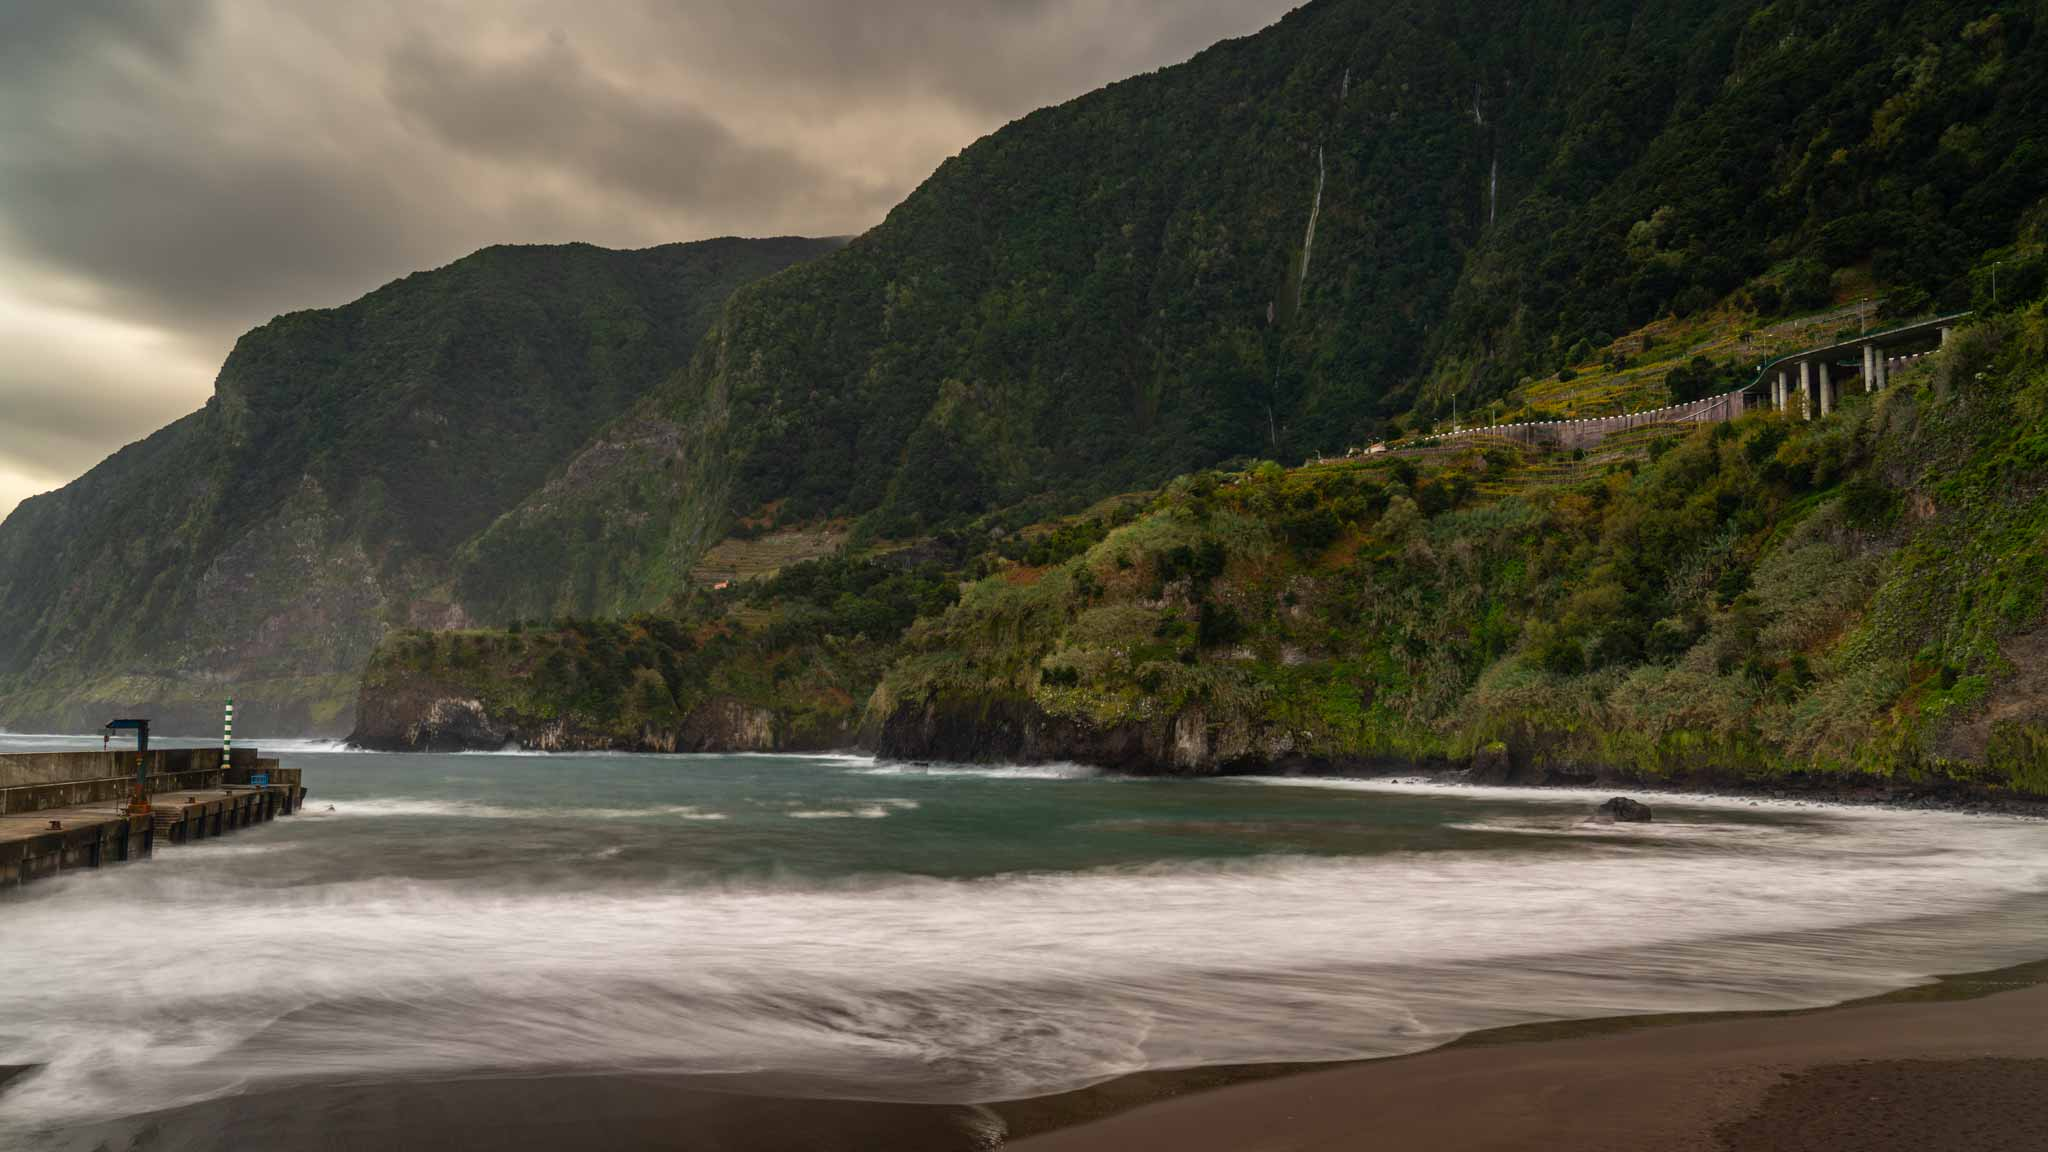 The black sand beach of Seixal with green cliffs and waterfalls